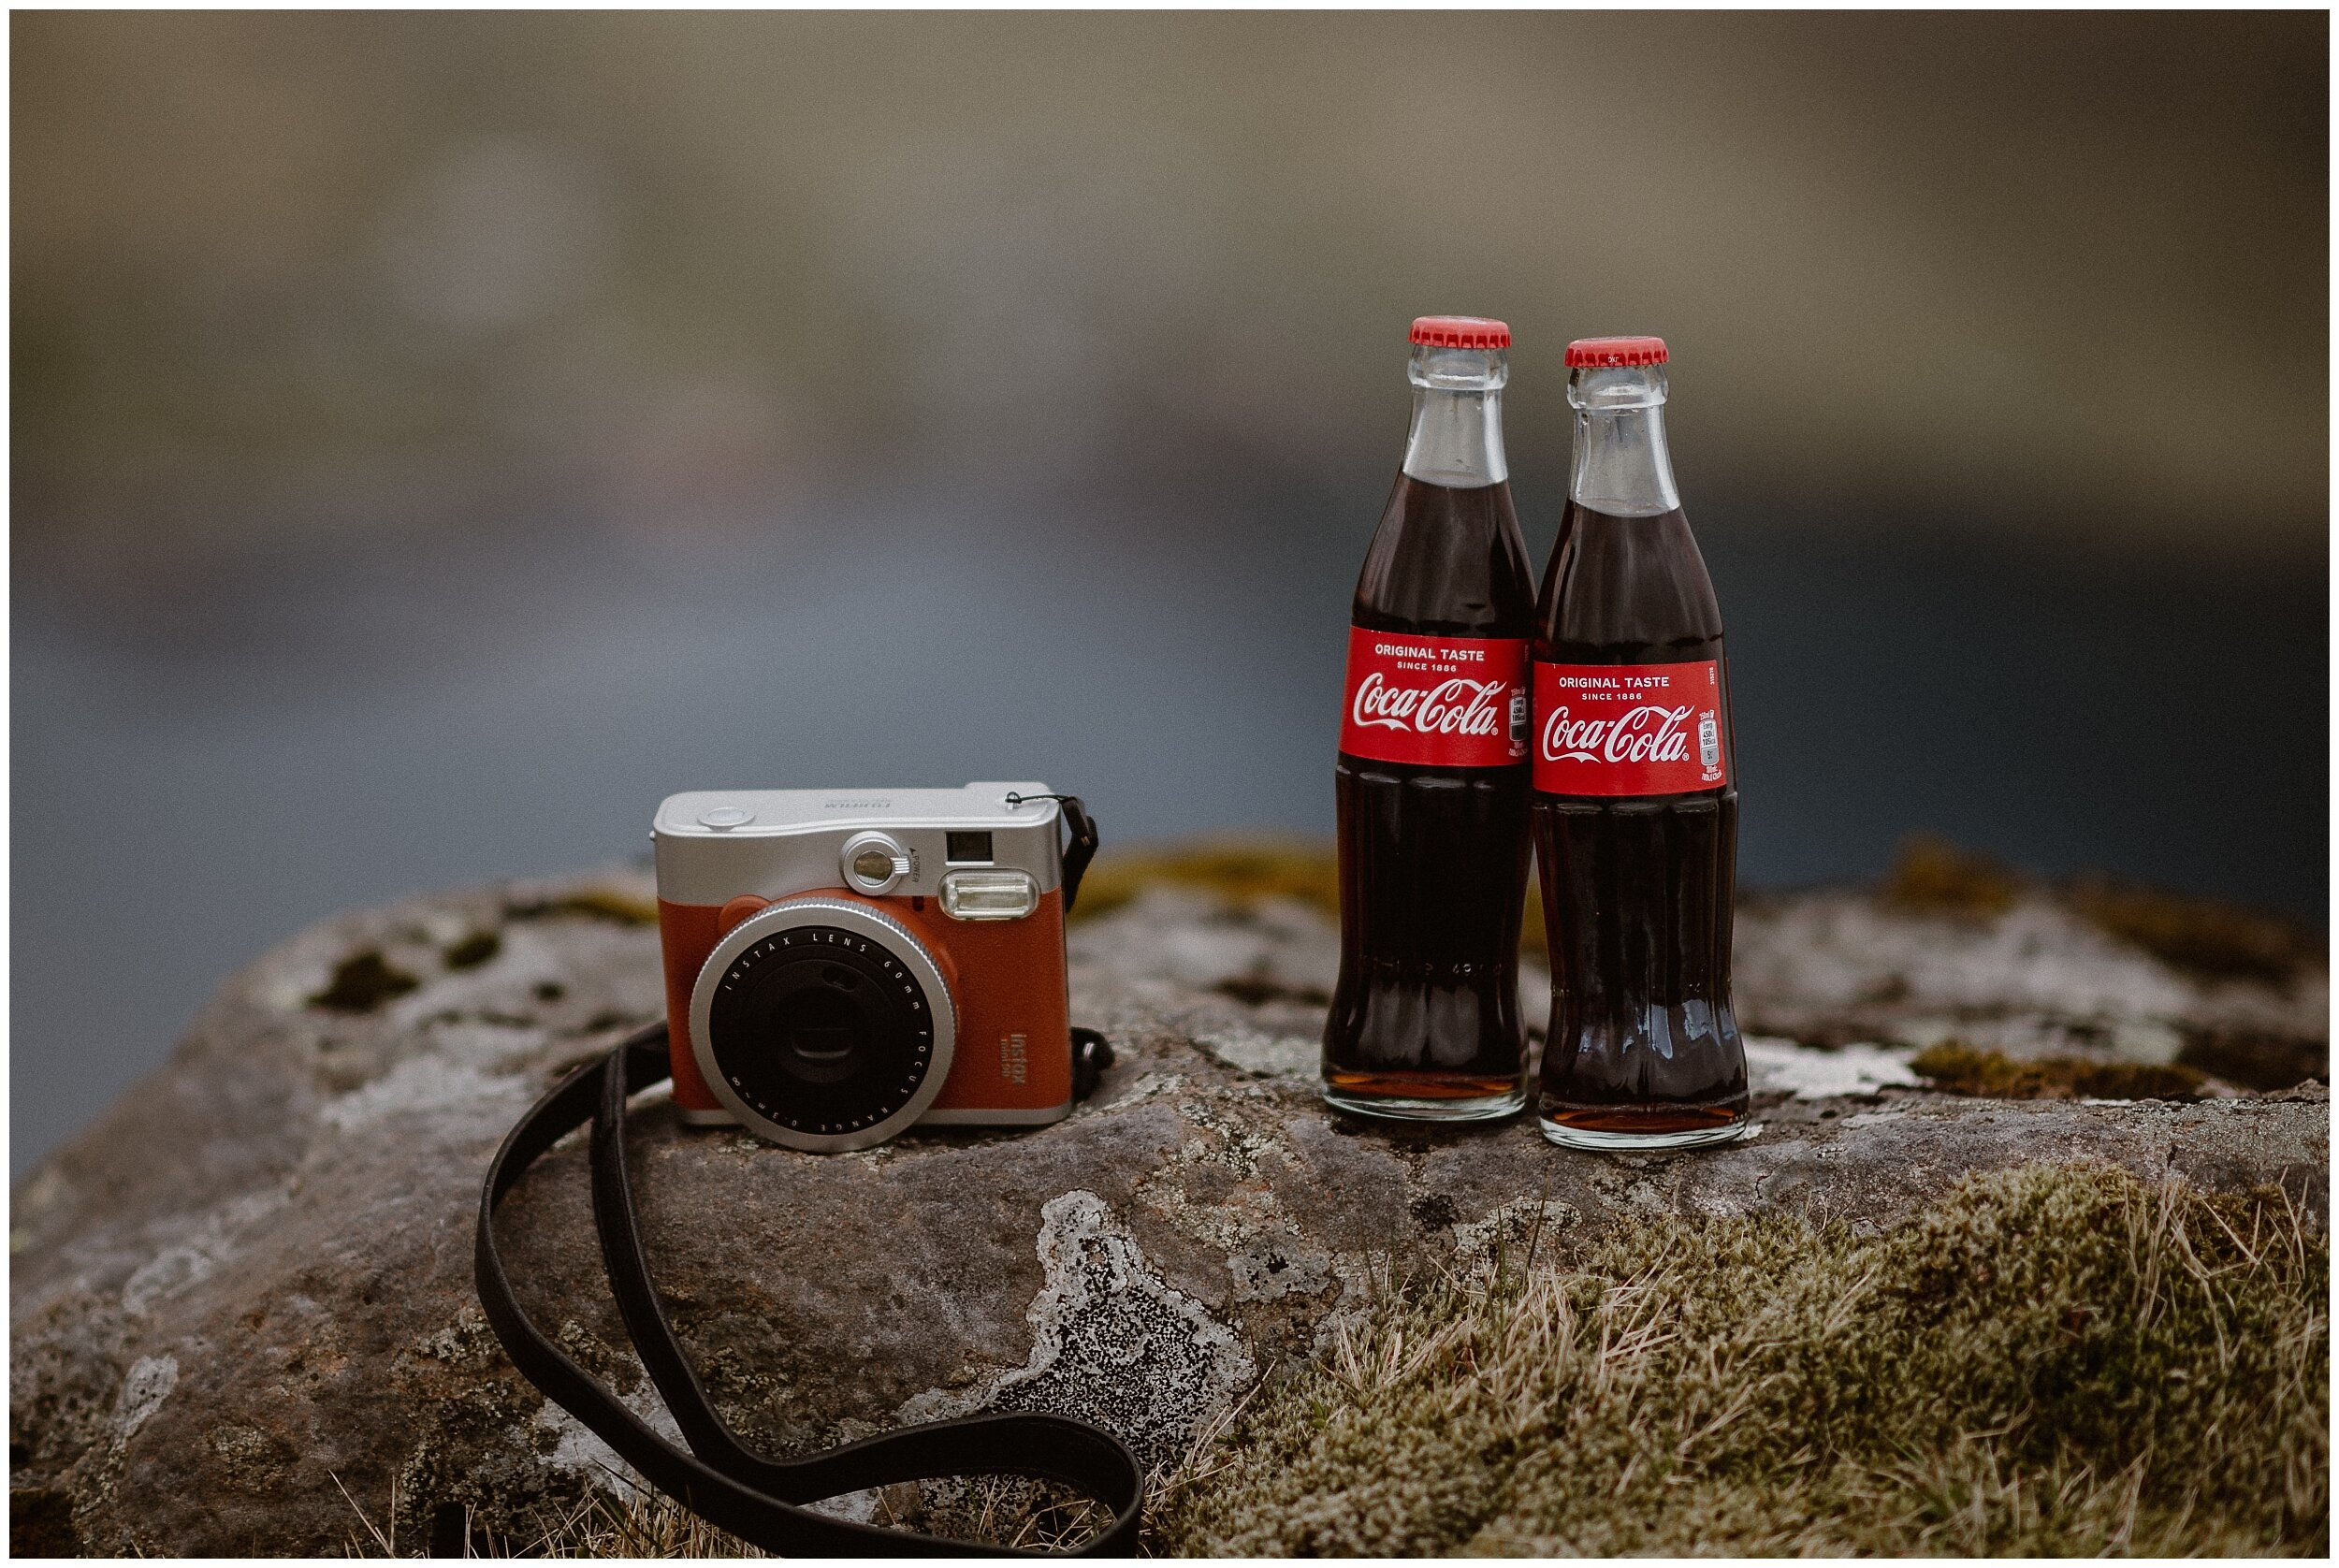 On a mossy rock sit two vintage coke bottles and a vintage polaroid camera, two very specific details of Elaura and Daryn's destination elopement in the Faroe Islands. These adventure elopement photos were captured by Adventure Instead, an elopement wedding photographer.